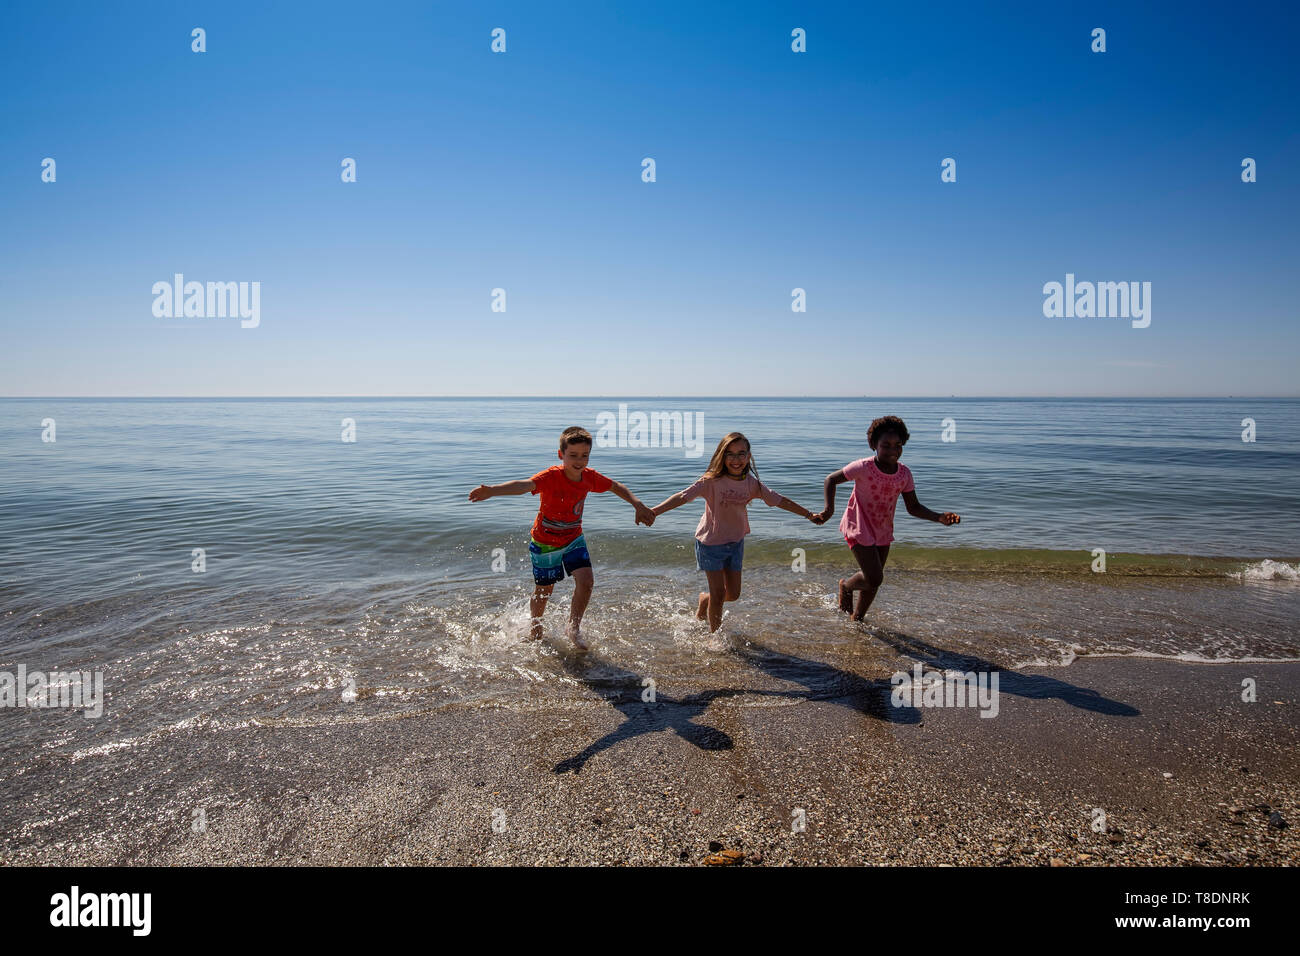 Group of children having fun on the beach. Mediterranean sea and blue sky. Costa del Sol, Marbella. Andalusia, Southern Spain. Europe - Stock Image